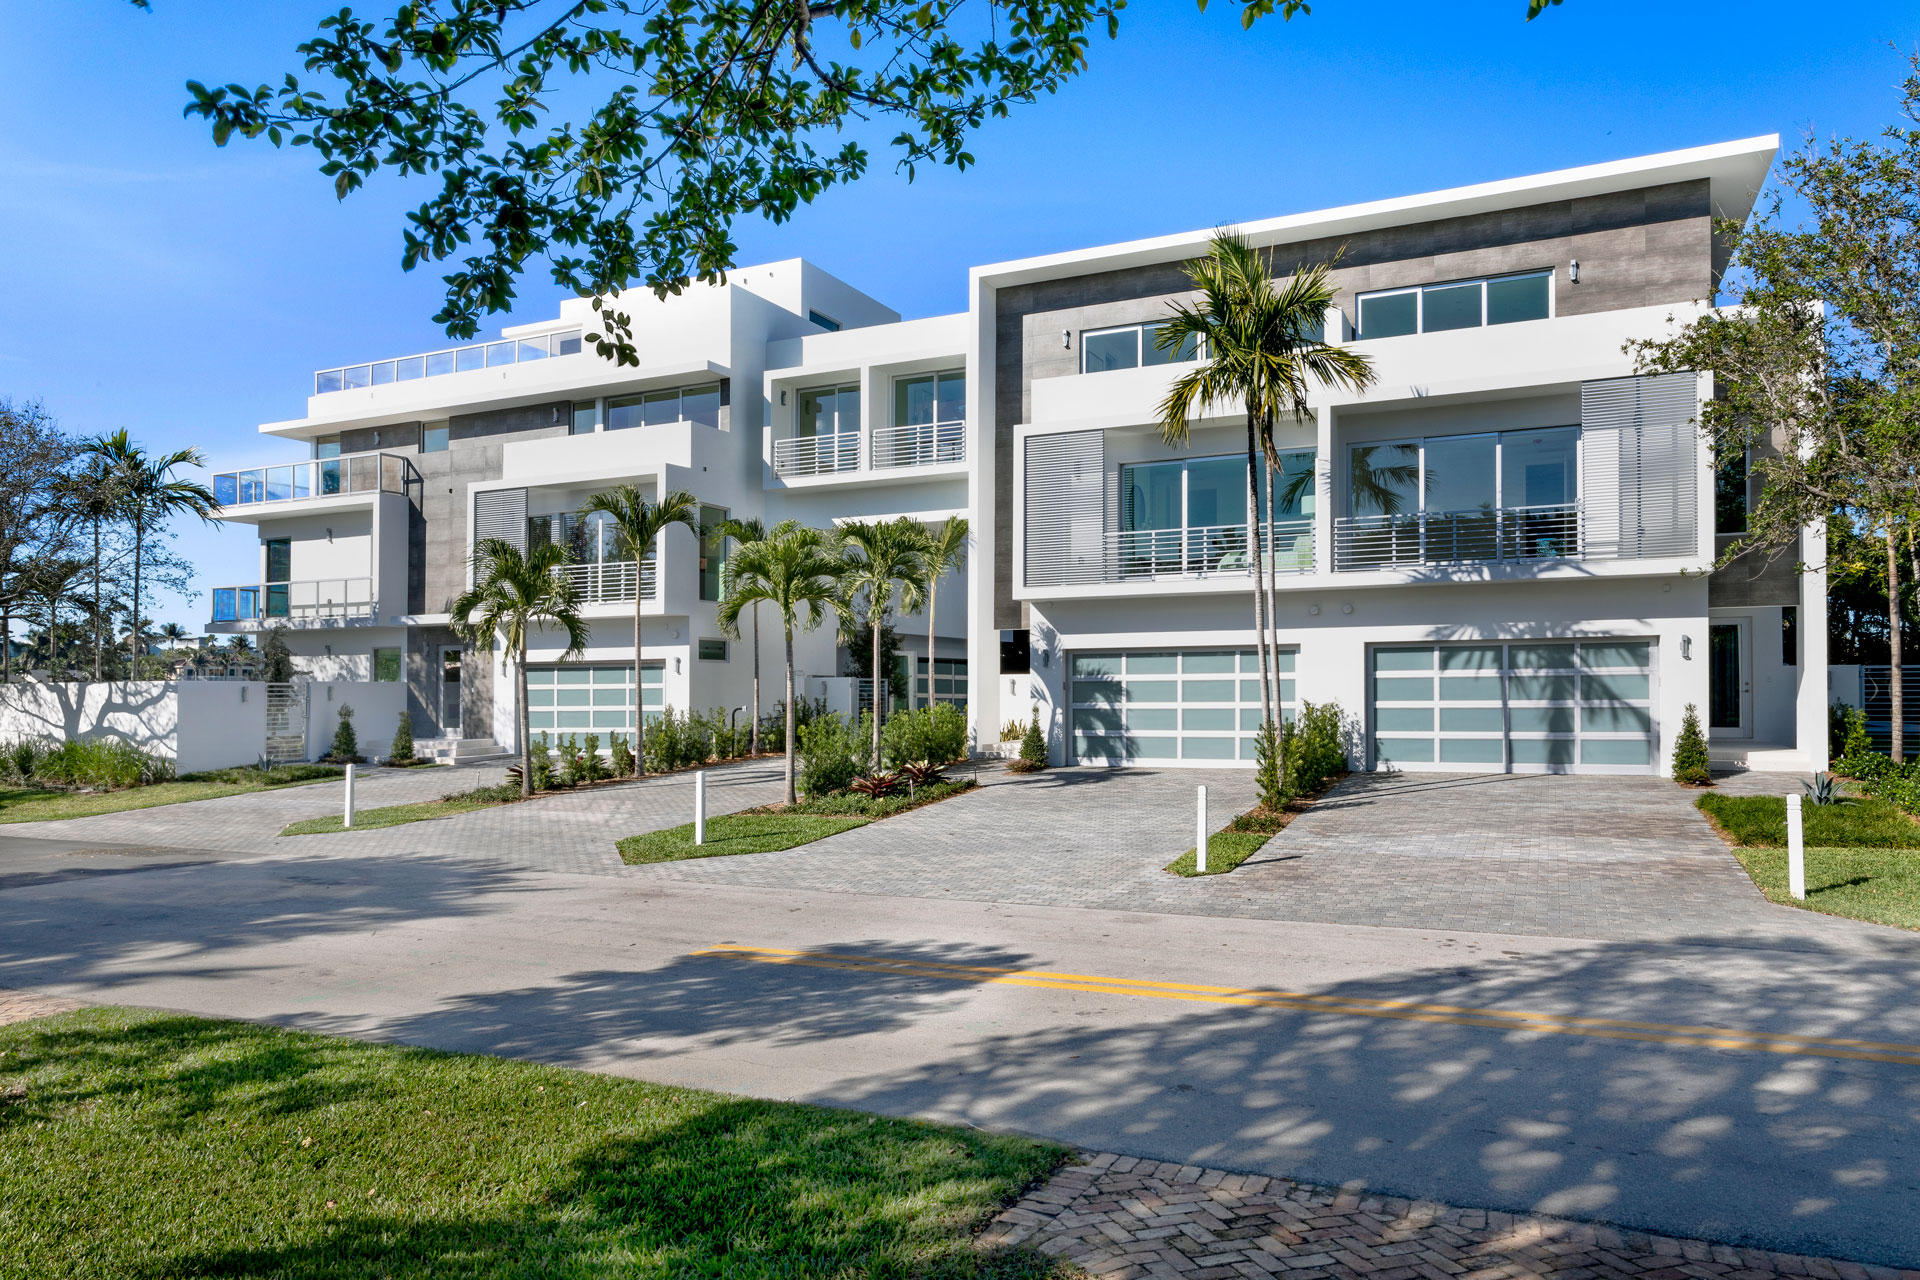 917 Bucida Road, Delray Beach, Florida 33483, 3 Bedrooms Bedrooms, ,3.1 BathroomsBathrooms,Townhouse,For Sale,Bucida,RX-10622733